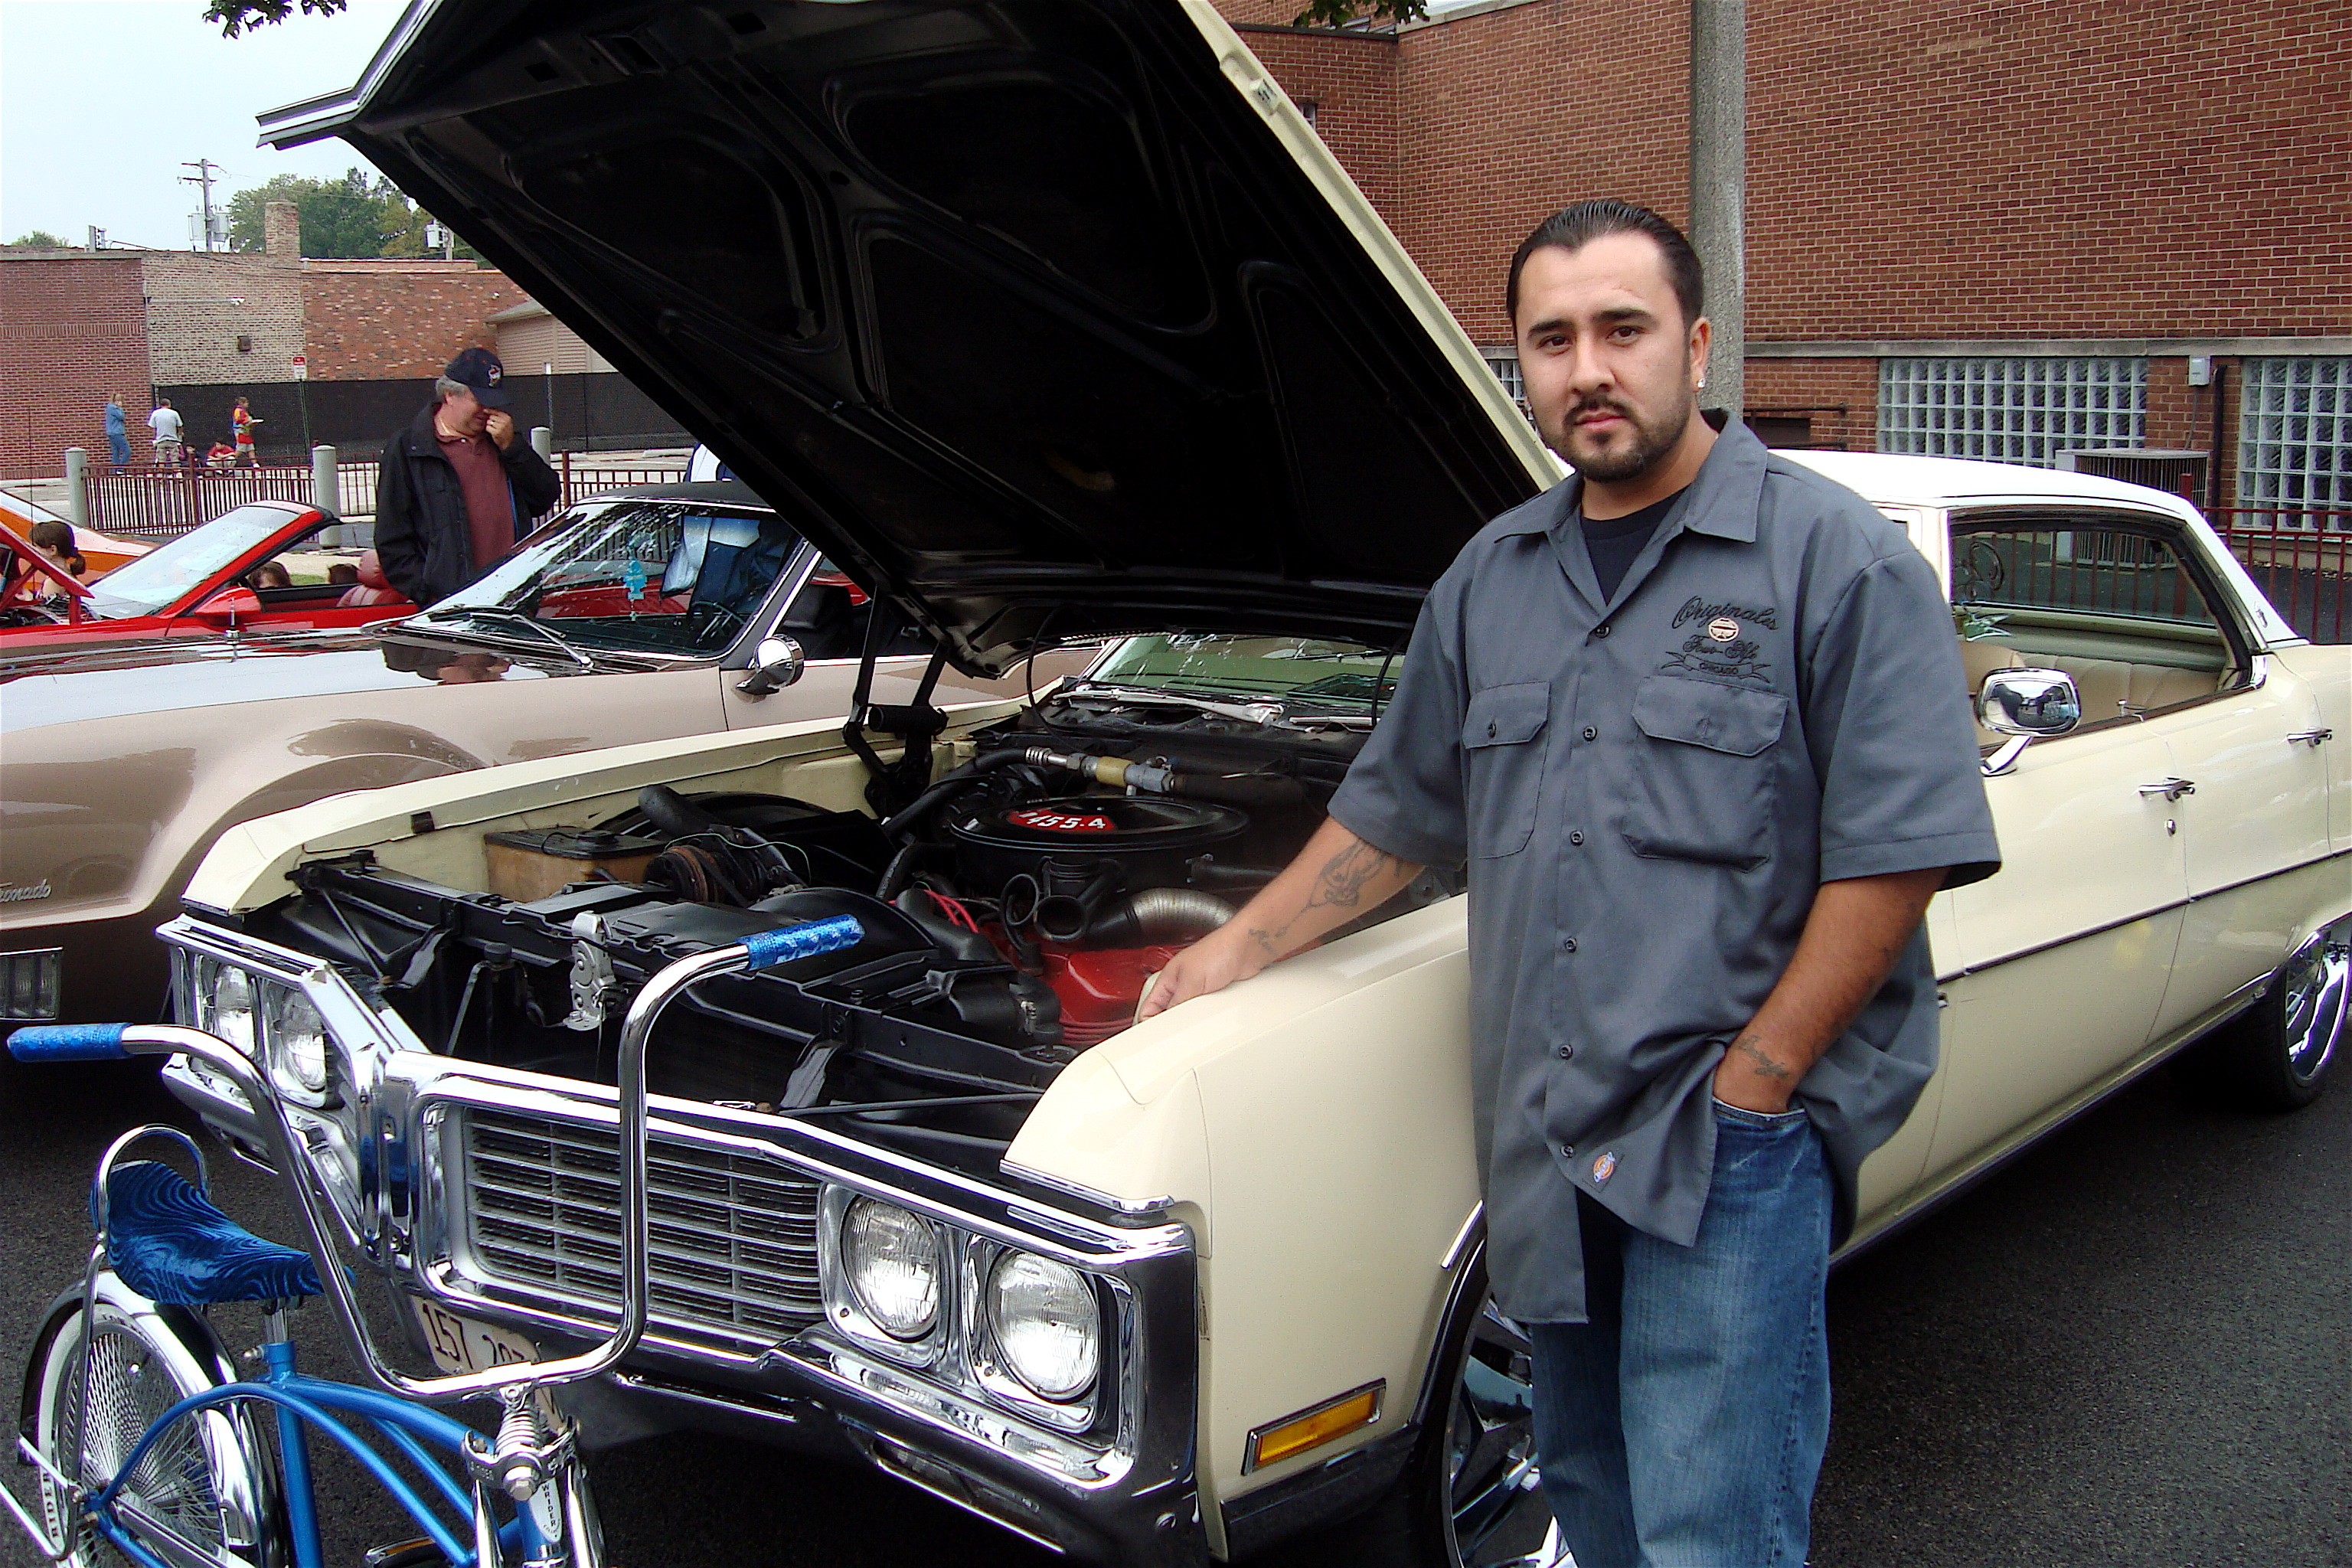 Cars On Parade At Route Car Show Berwyn News - Route 66 classic car show